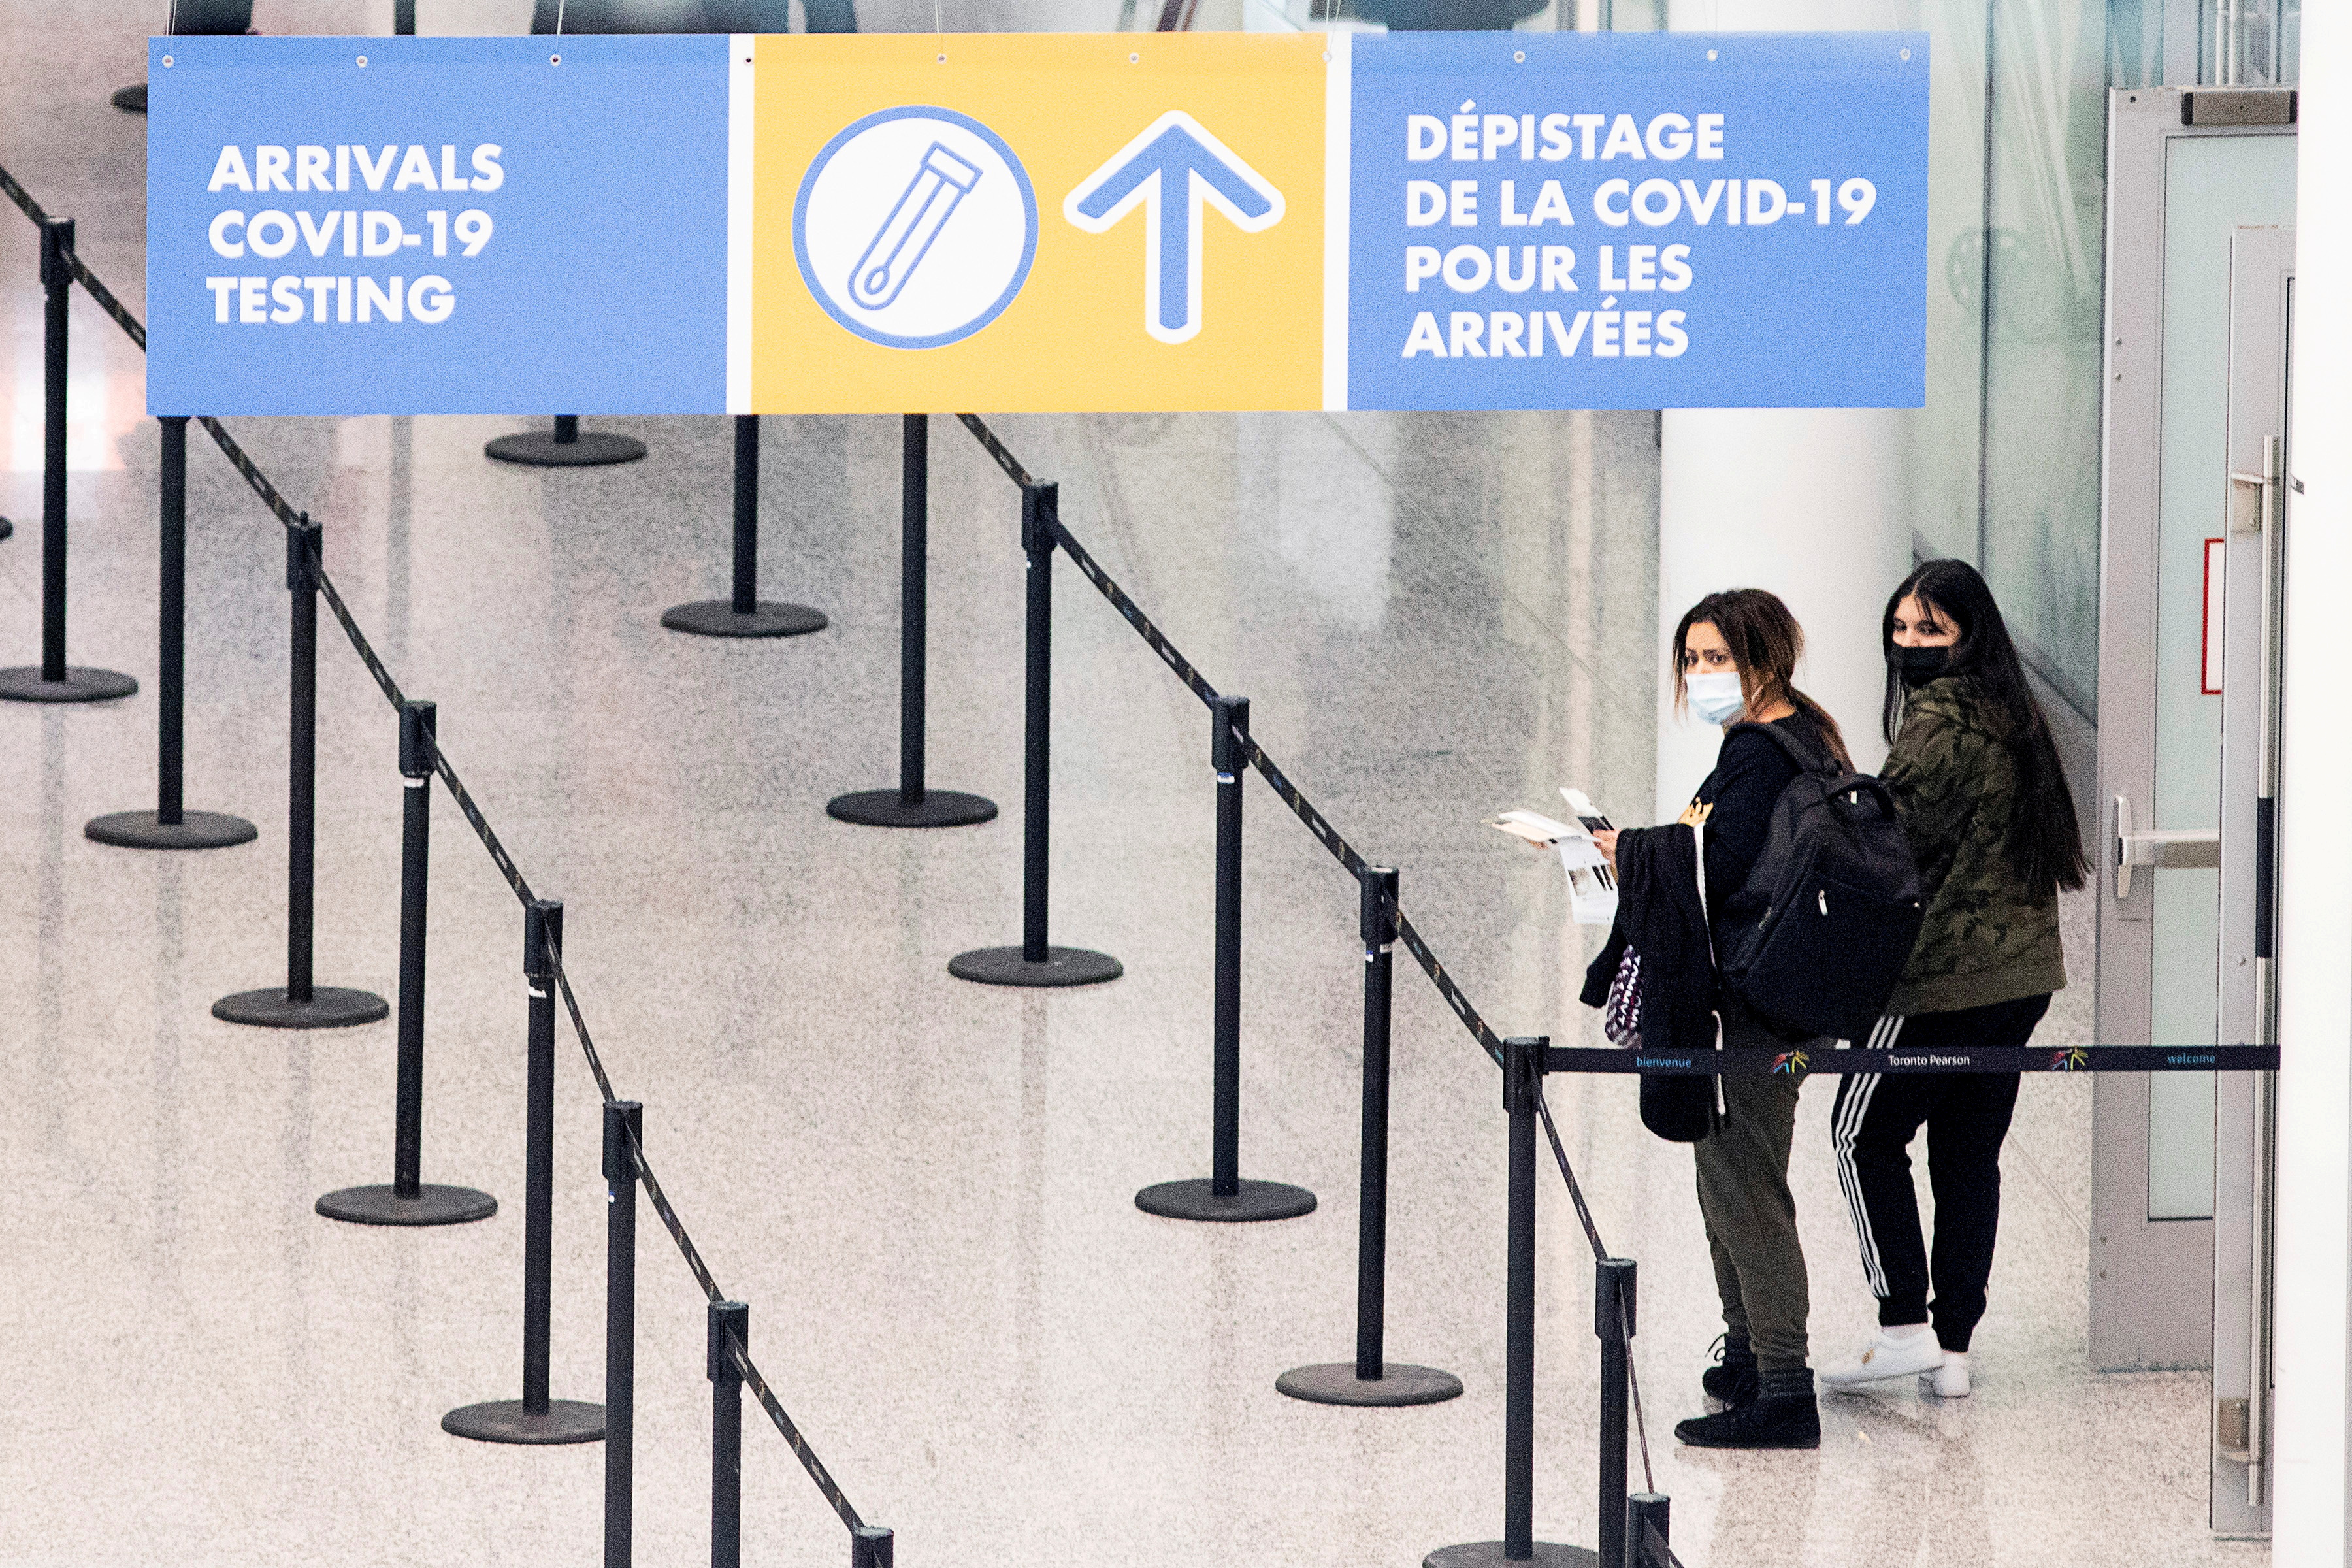 Passengers arrive at Toronto's Pearson airport after mandatory coronavirus disease (COVID-19) testing took effect for international arrivals in Mississauga, Ontario, Canada February 1, 2021. REUTERS/Carlos Osorio